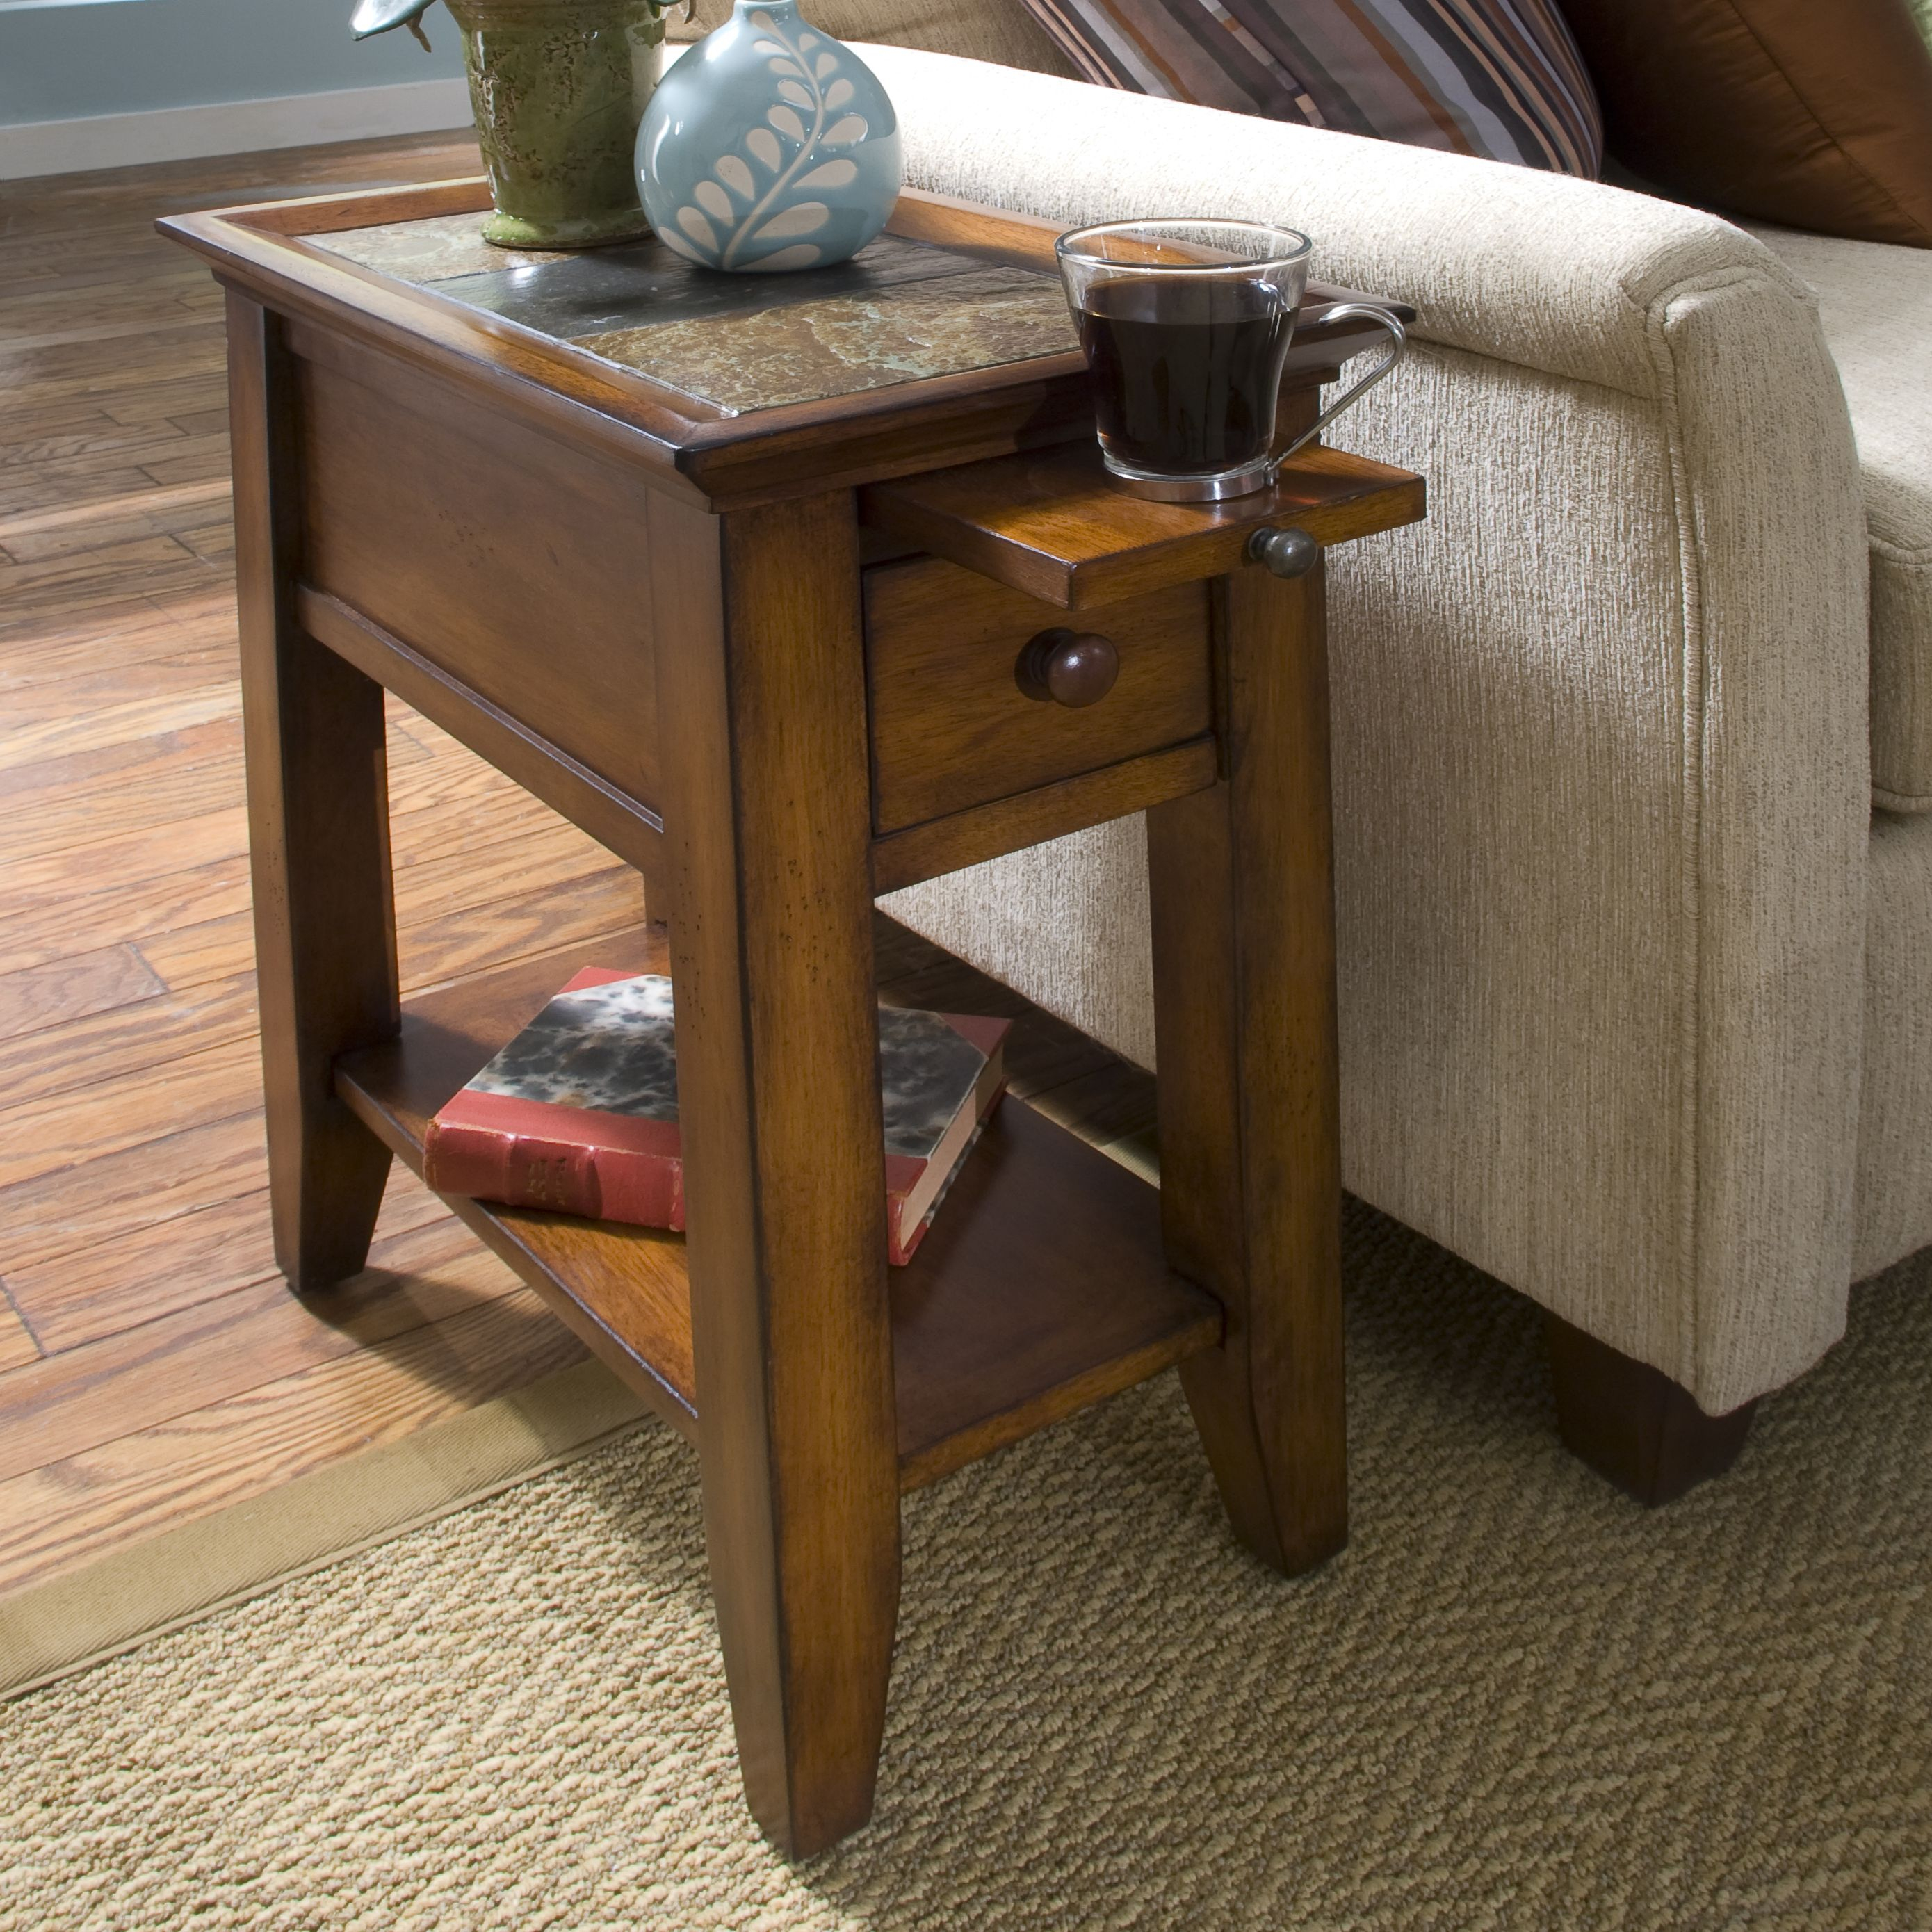 coffee table with charging station tables ideas sofa best for sectionals small square accent full size brown polished wooden narrow side ashley chairside end furniture tiny spaces